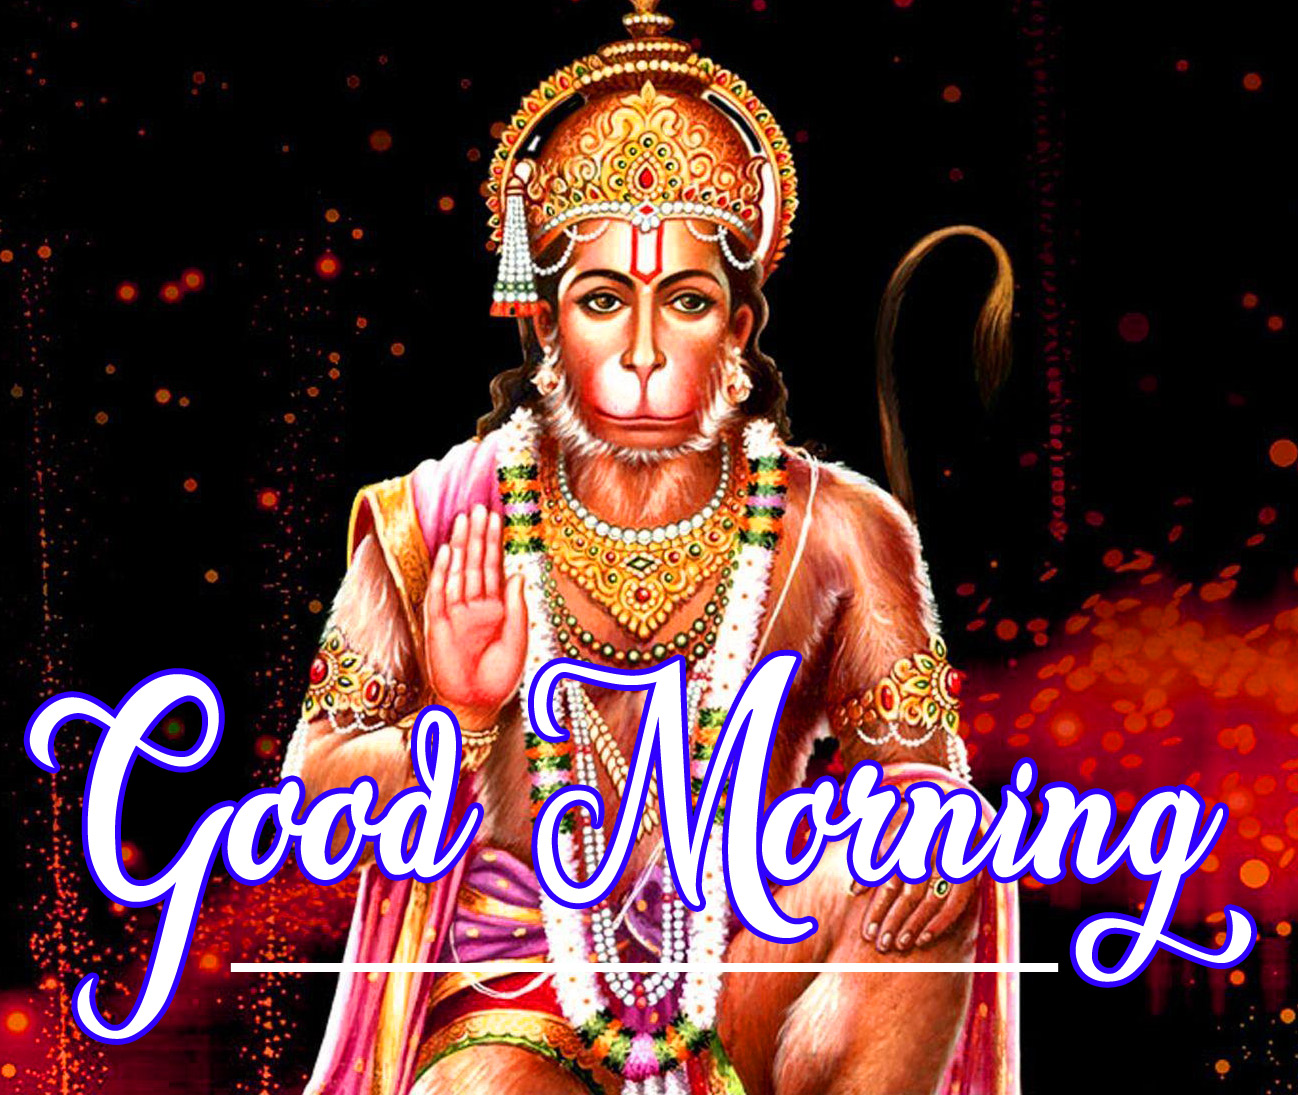 Lord Hanuman Ji good morning 20